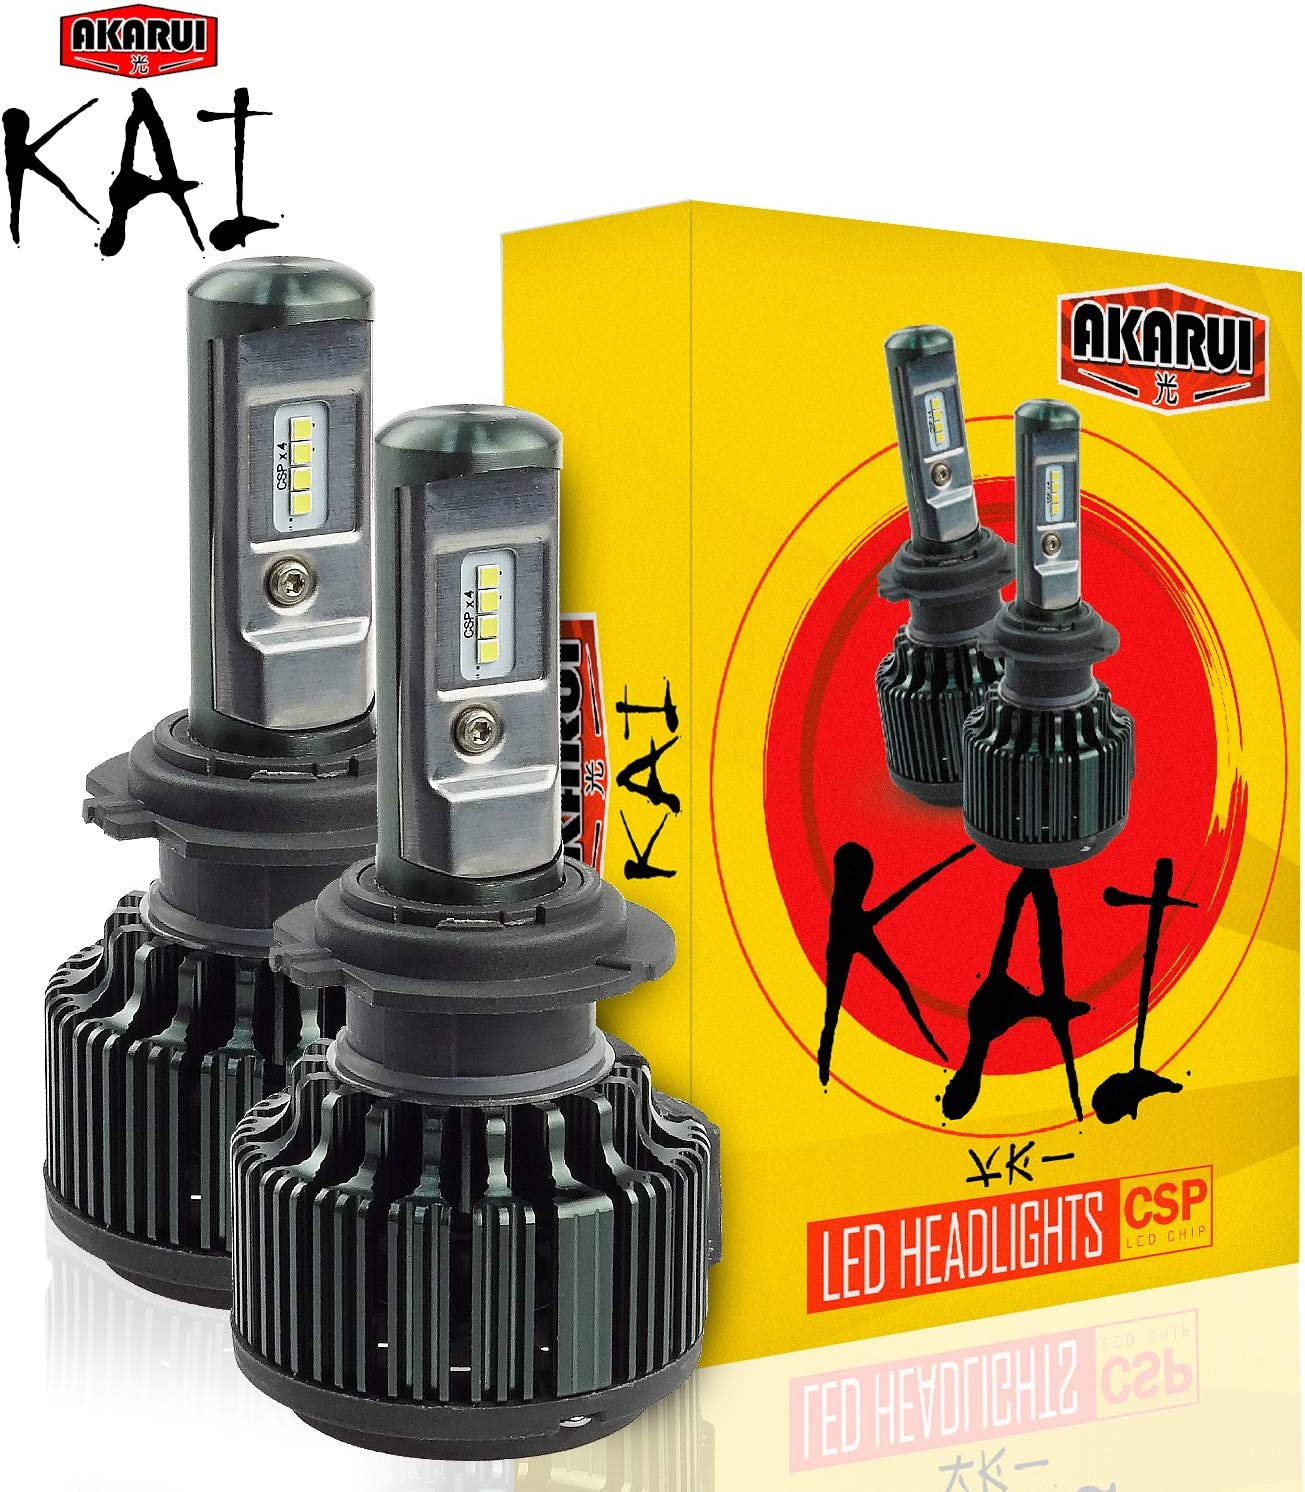 KAI AKARUI LED Headlight Bulbs